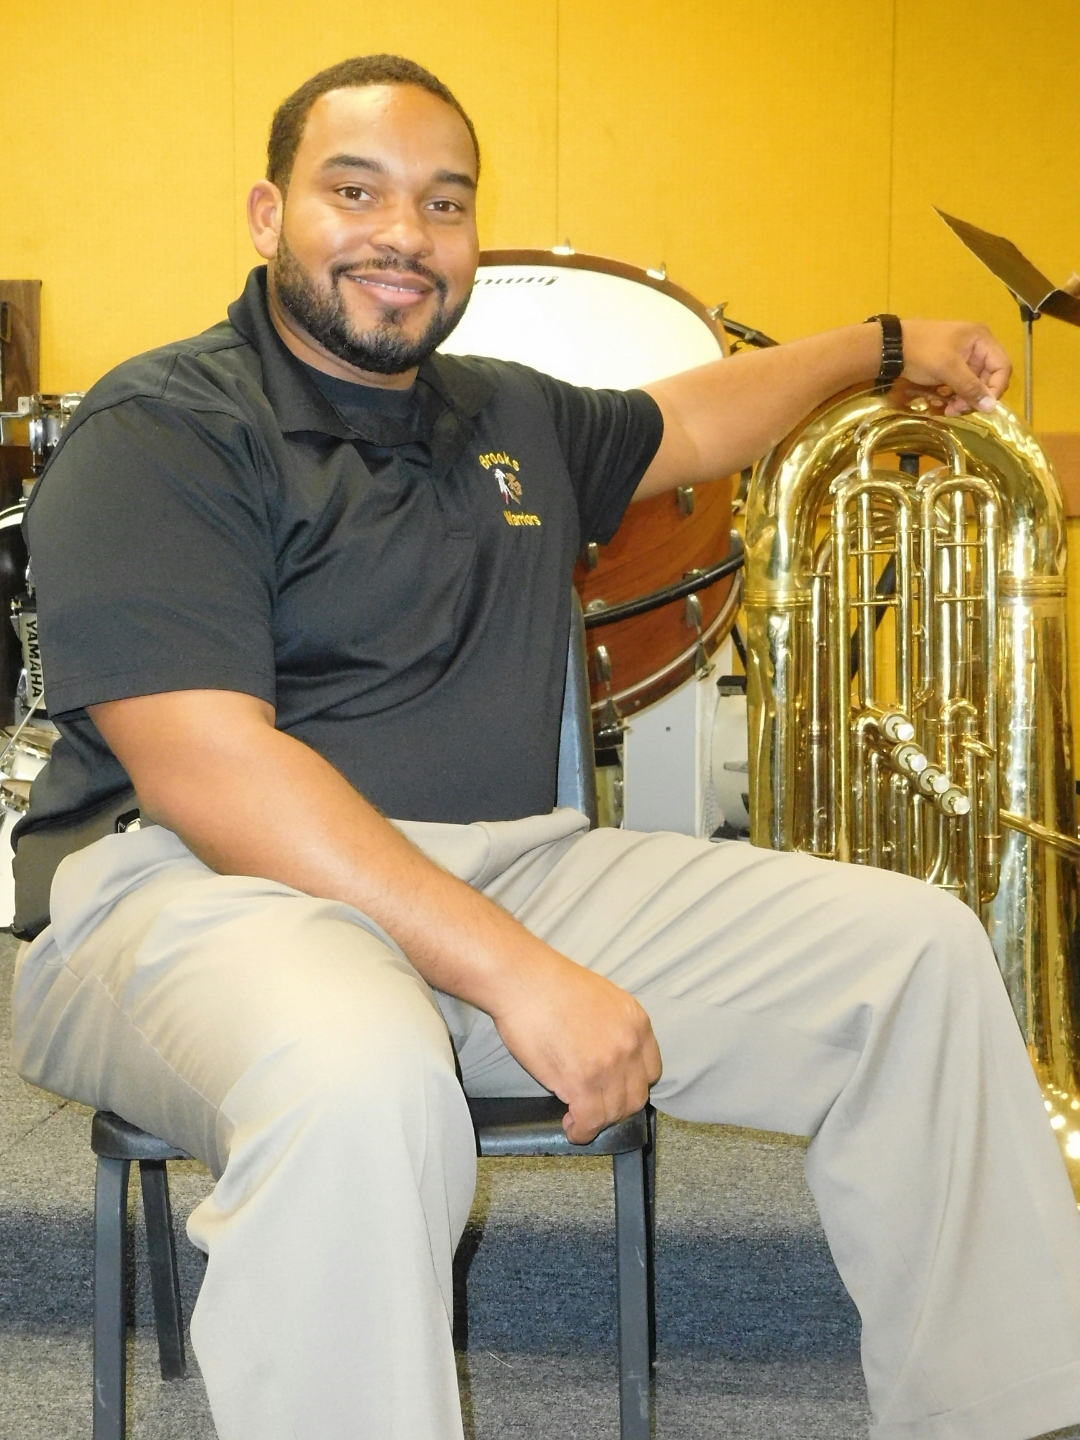 brooks band director is semifinalist for music educator